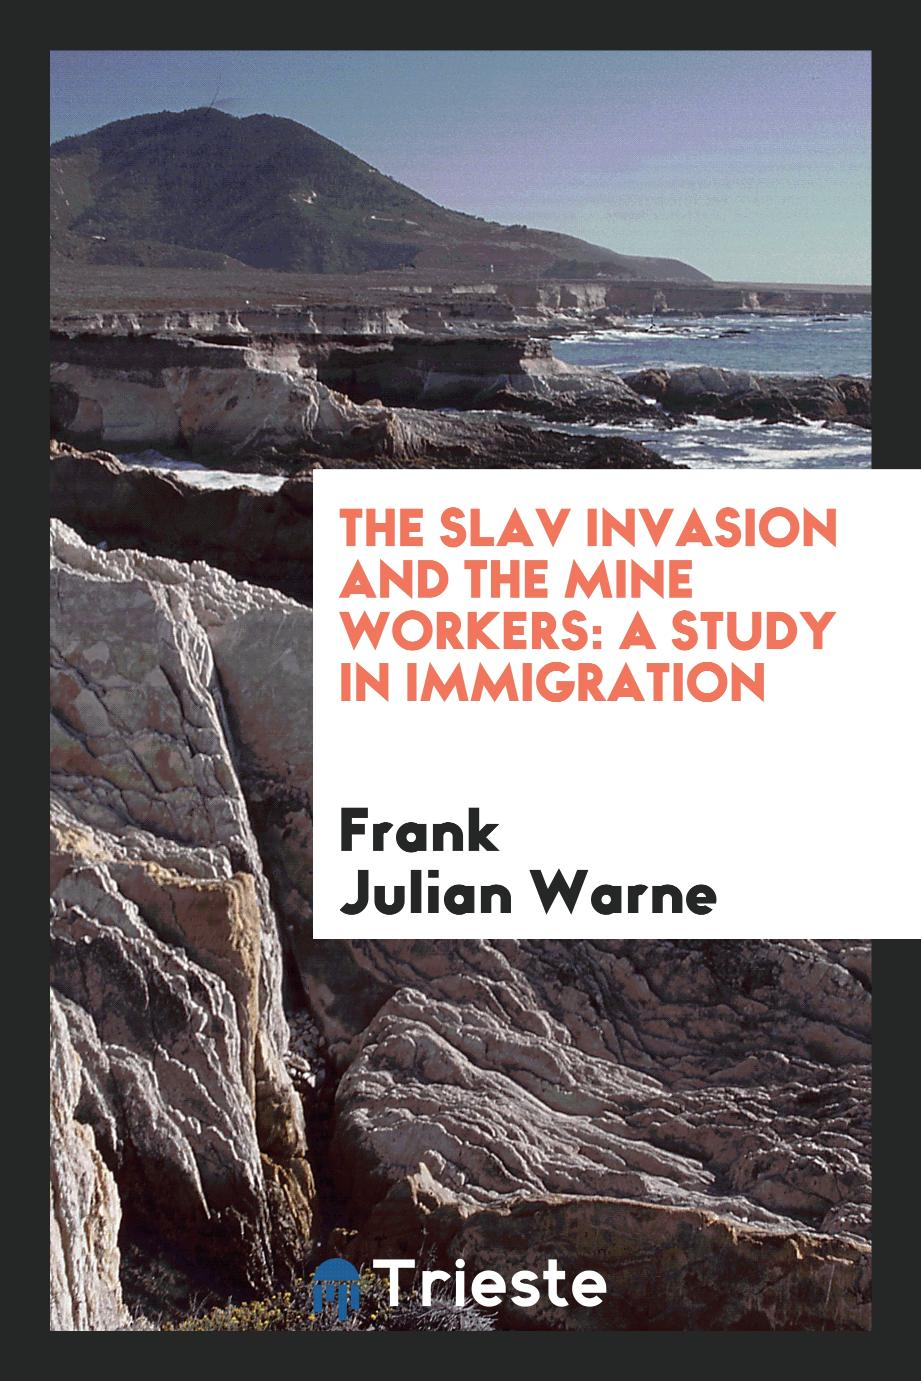 The Slav invasion and the mine workers: a study in immigration